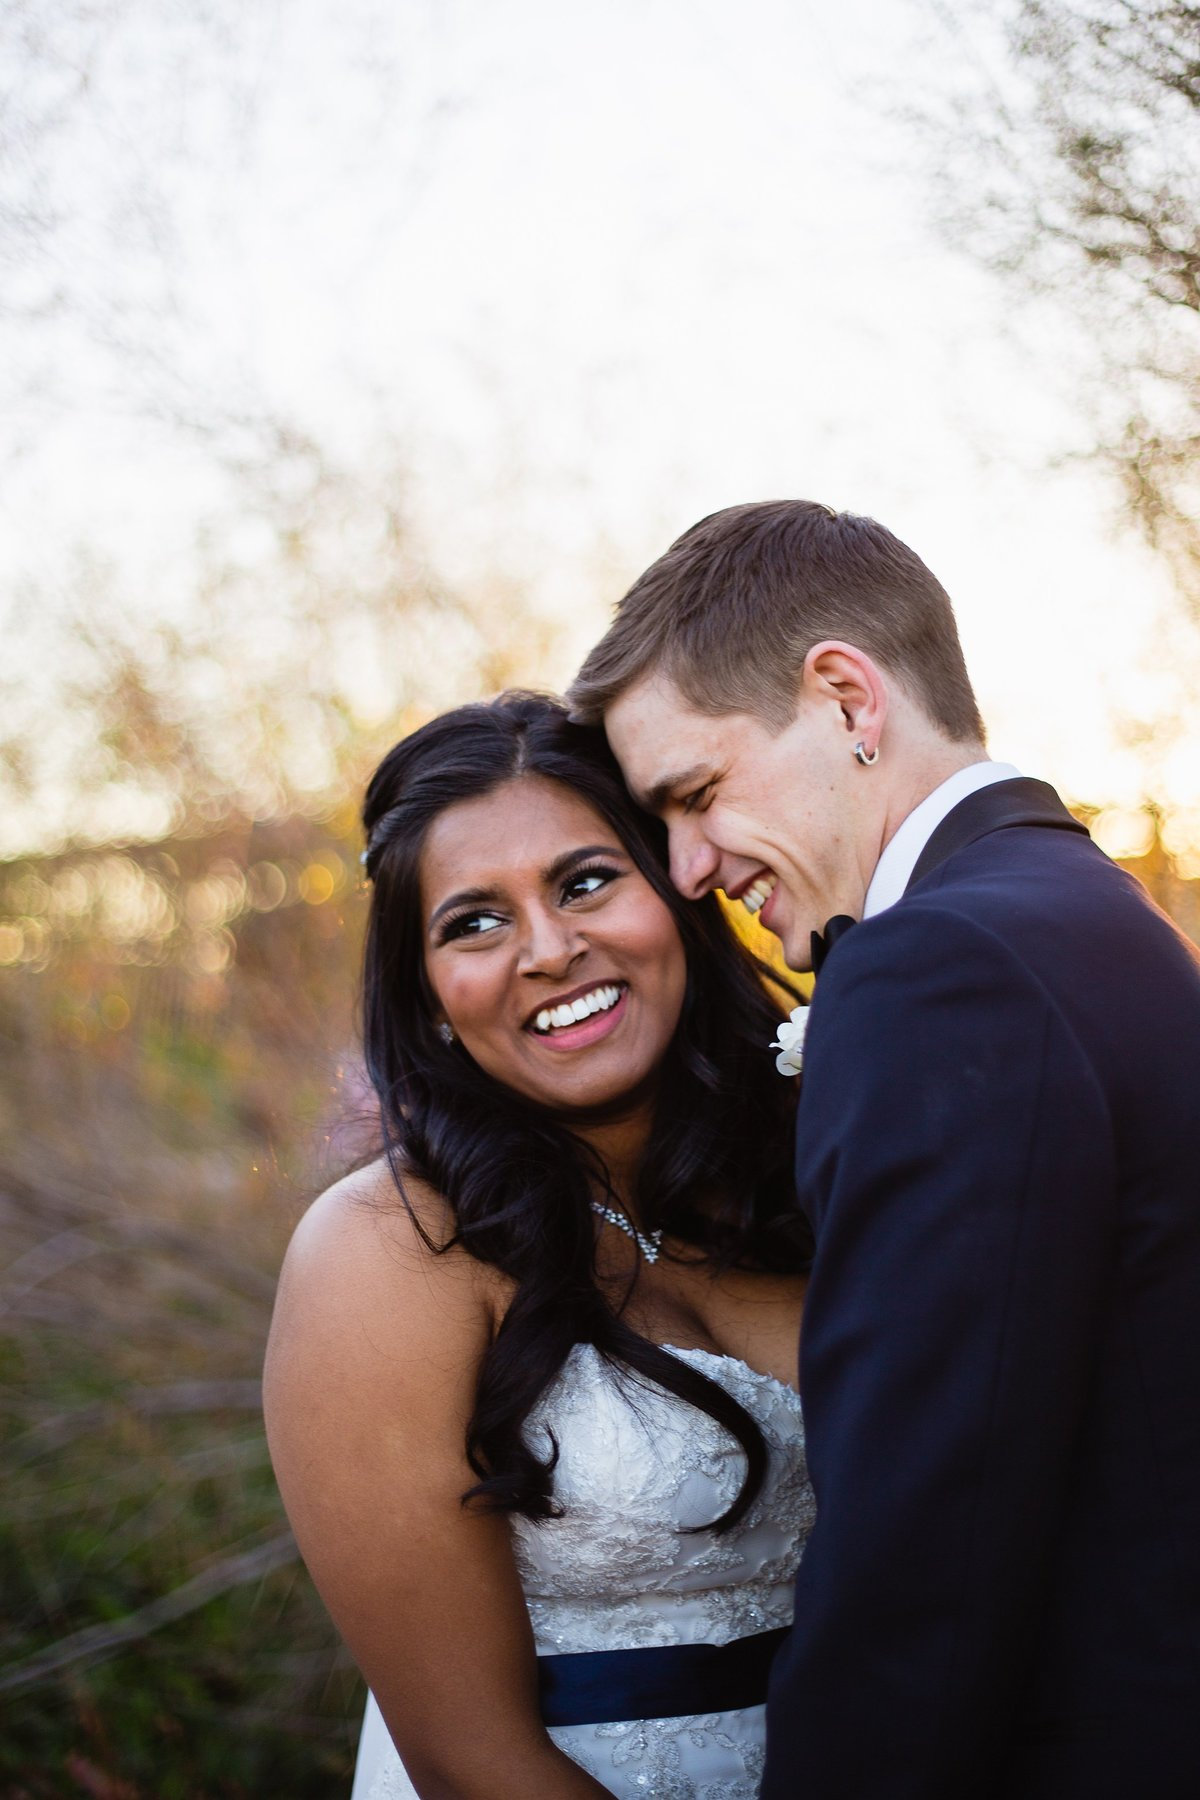 Bride and groom laughing together on their wedding day by Phoenix wedding photographer PMA Photography.